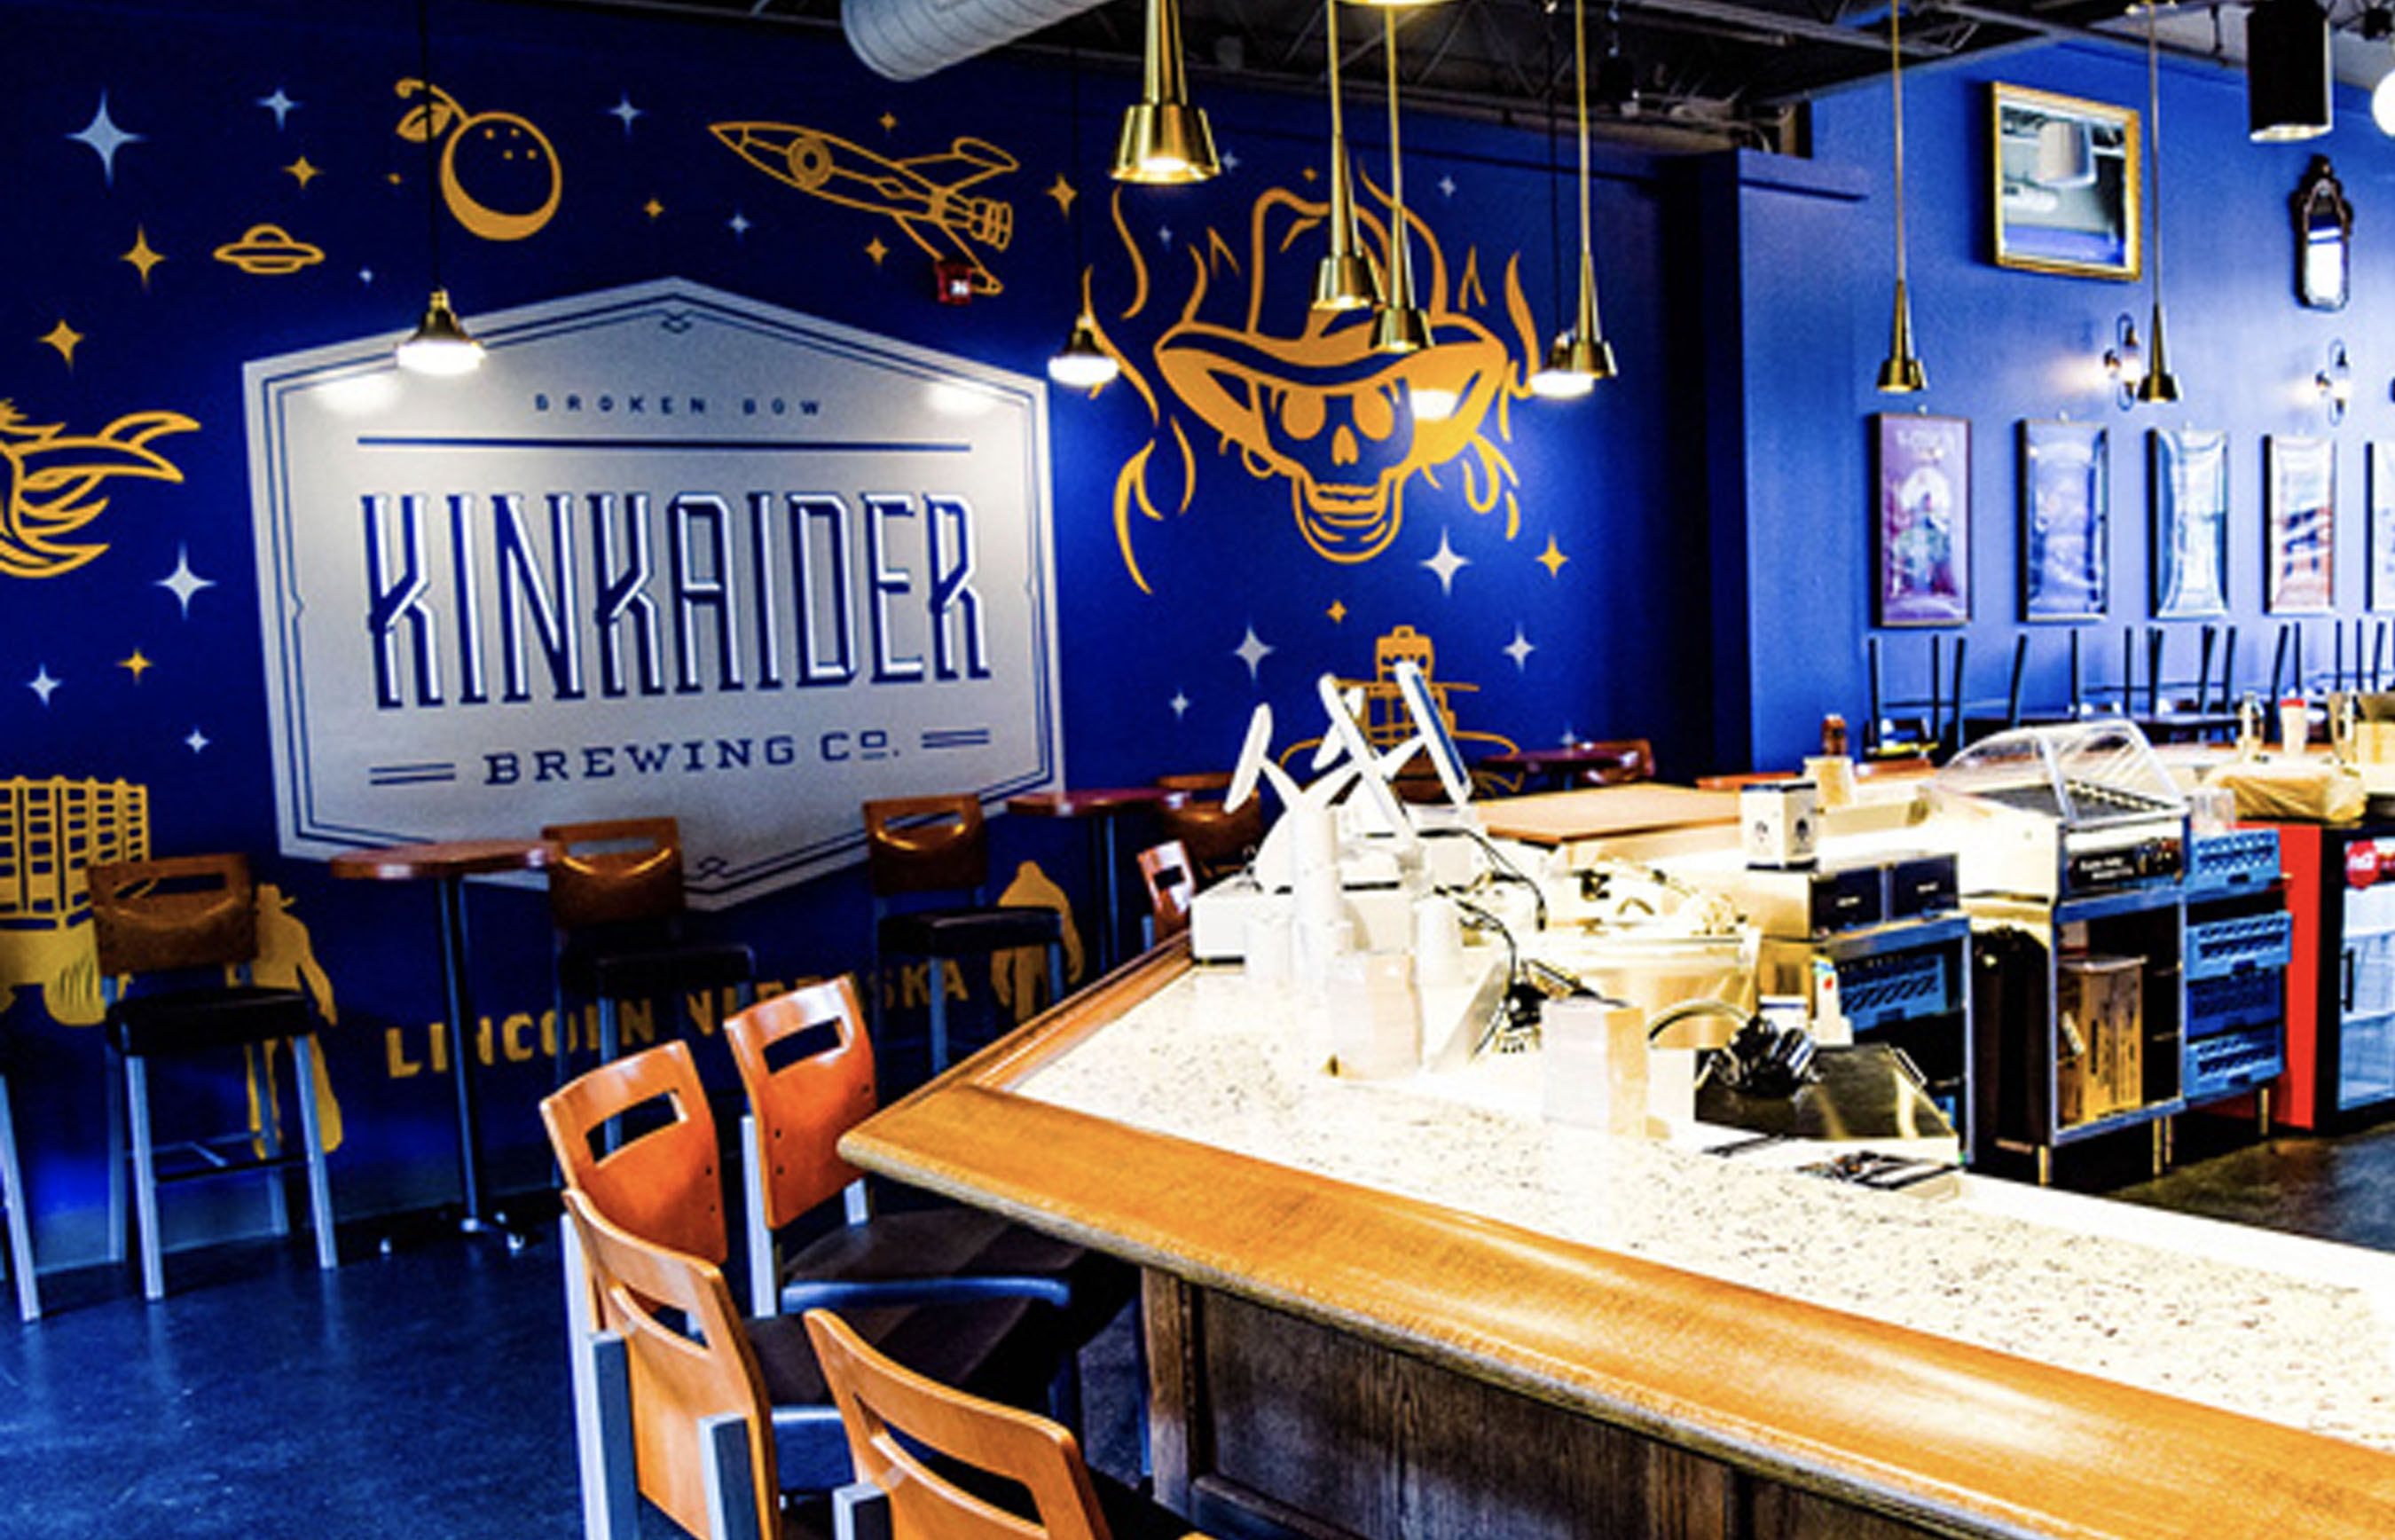 Kinkaider Brewing Co. in Lincoln's Murual